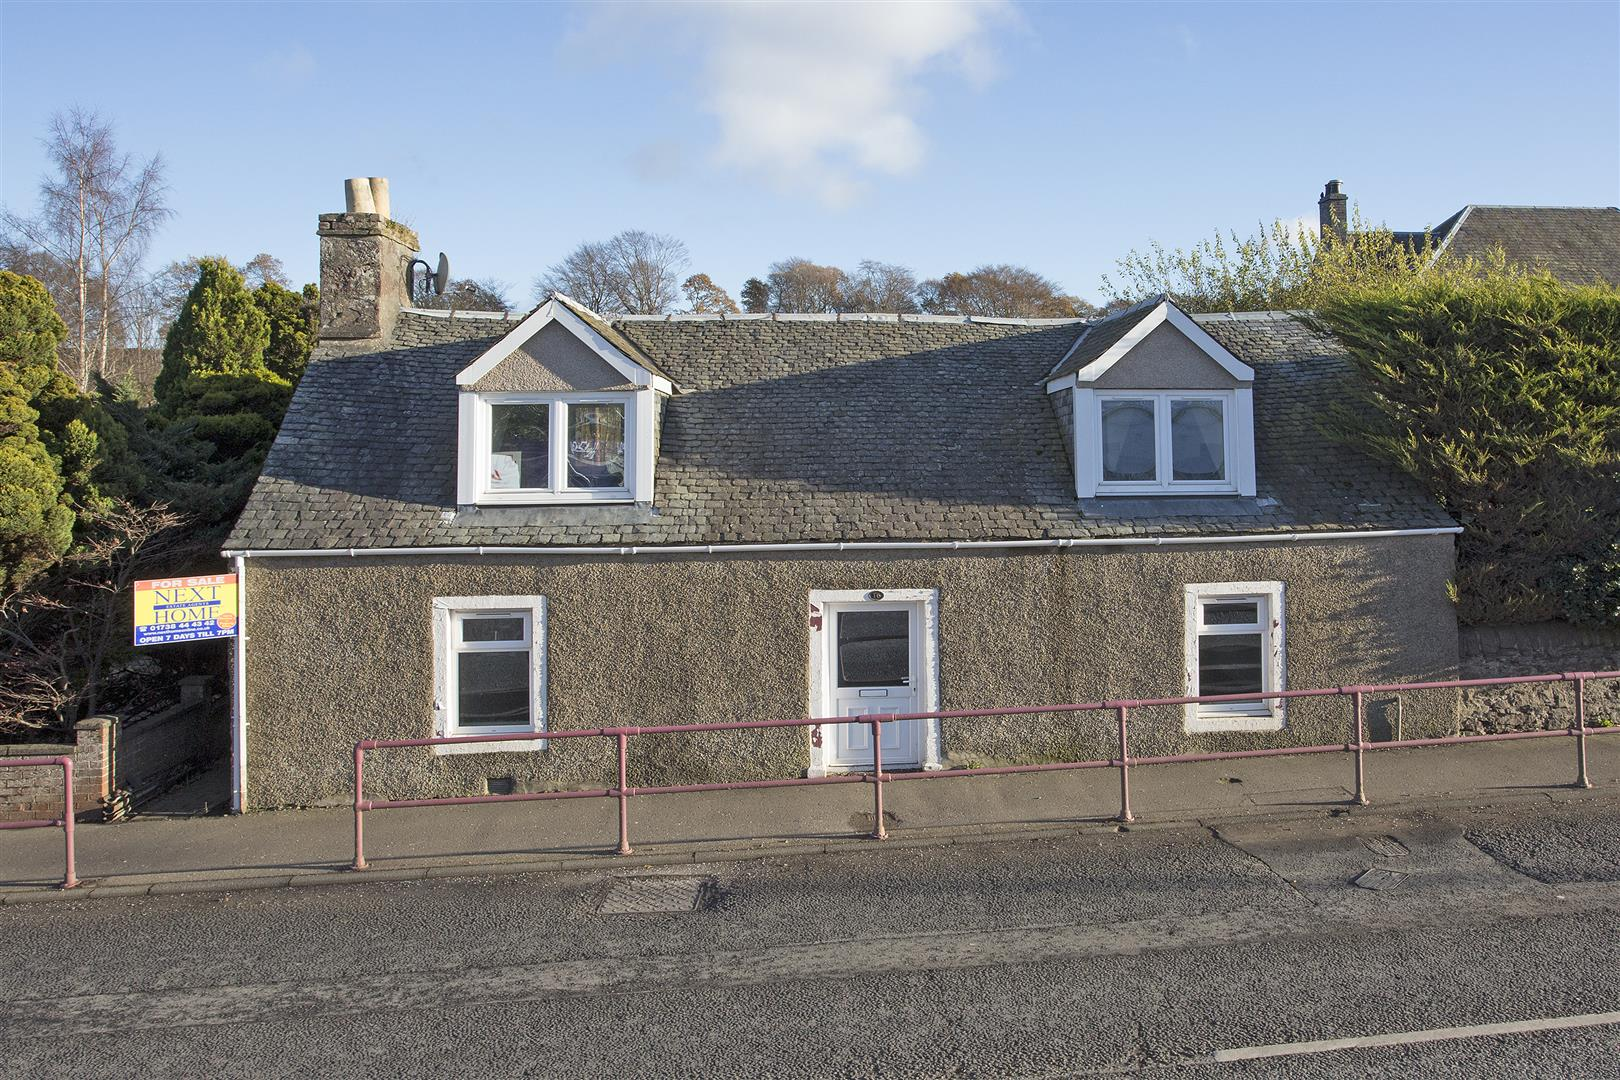 16, South Bridgend, Crieff, Perthshire, PH7 4DH, UK